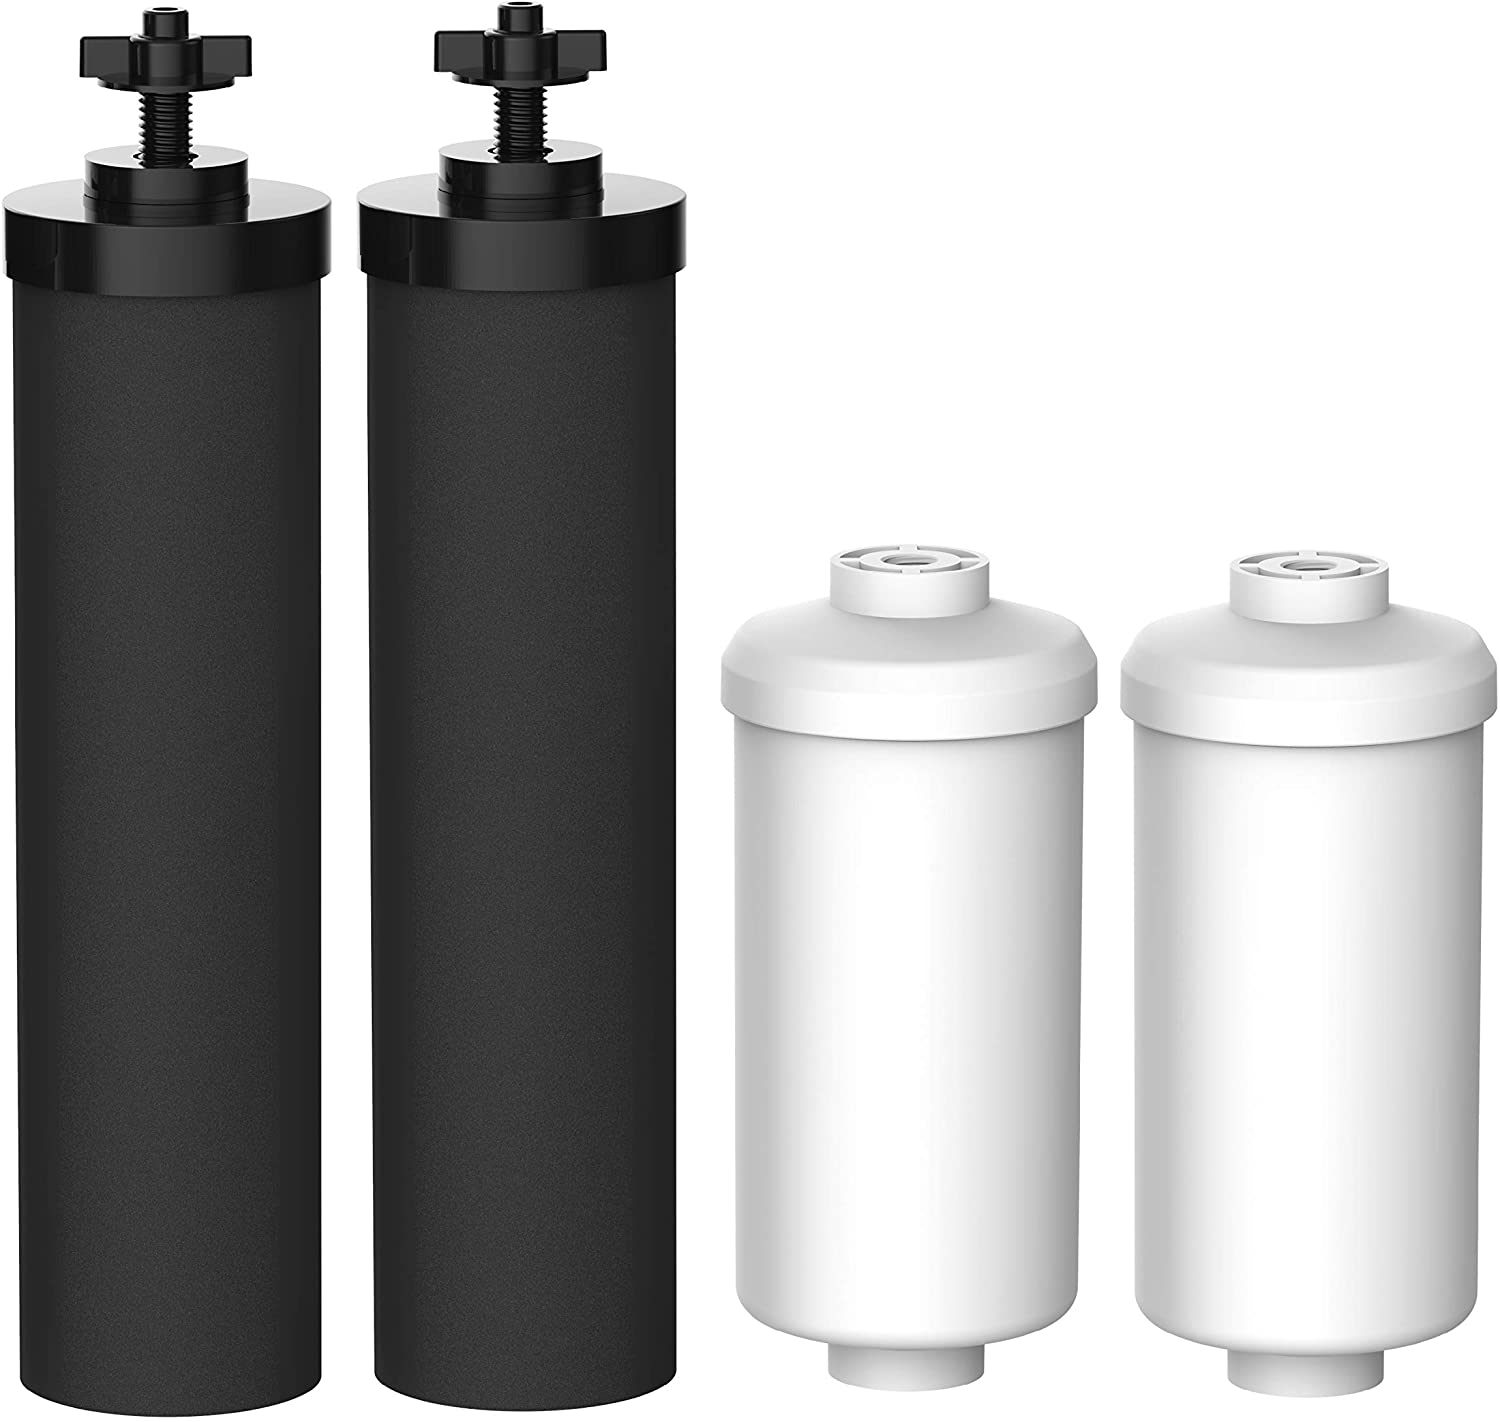 FilterLogic Water Filter, Compatible with Black Filters (BB9-2) & Fluoride Filters (PF-2) Combo Pack and Gravity Filter System - Includes 2 Black Filters and 2 Fluoride Filters …